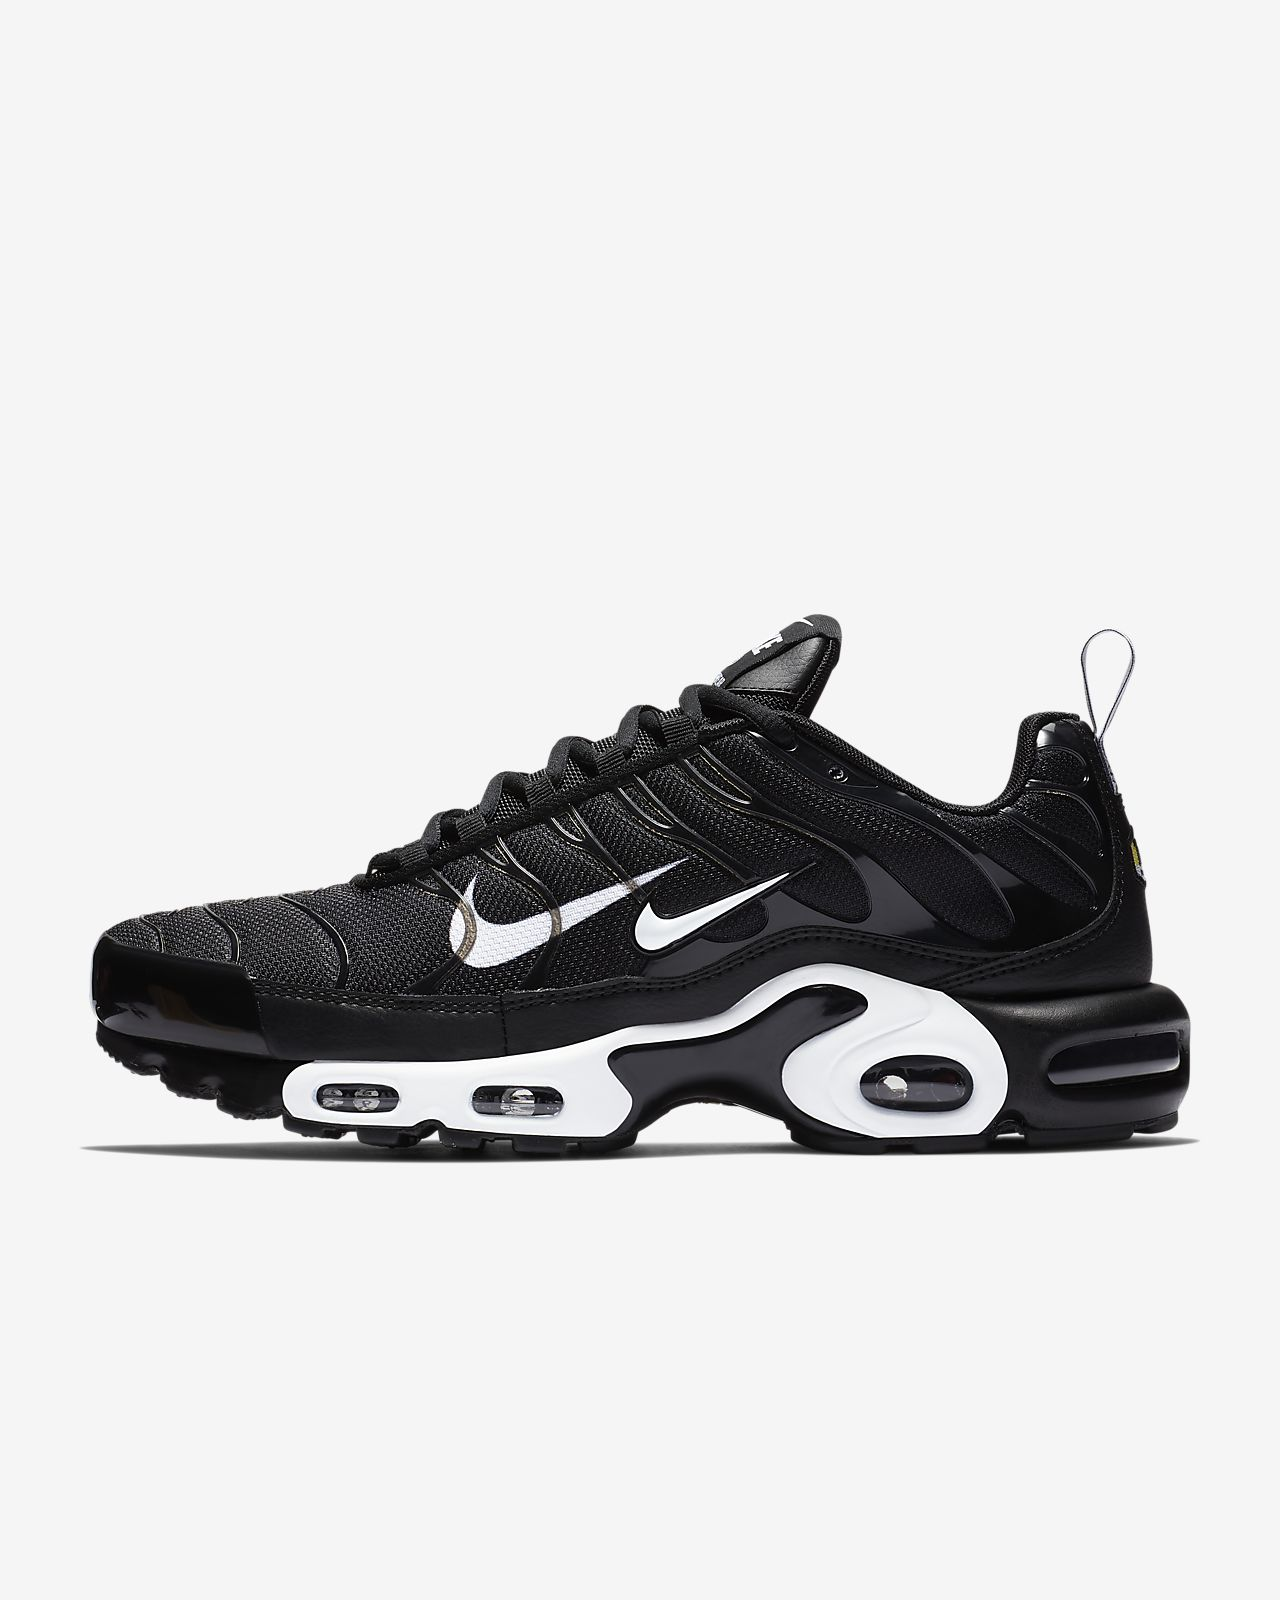 2f47f Noir Nike Plus Max Tn Usa Air 3a0e0 Triple N0wpokzn8x bgvYf6yI7m